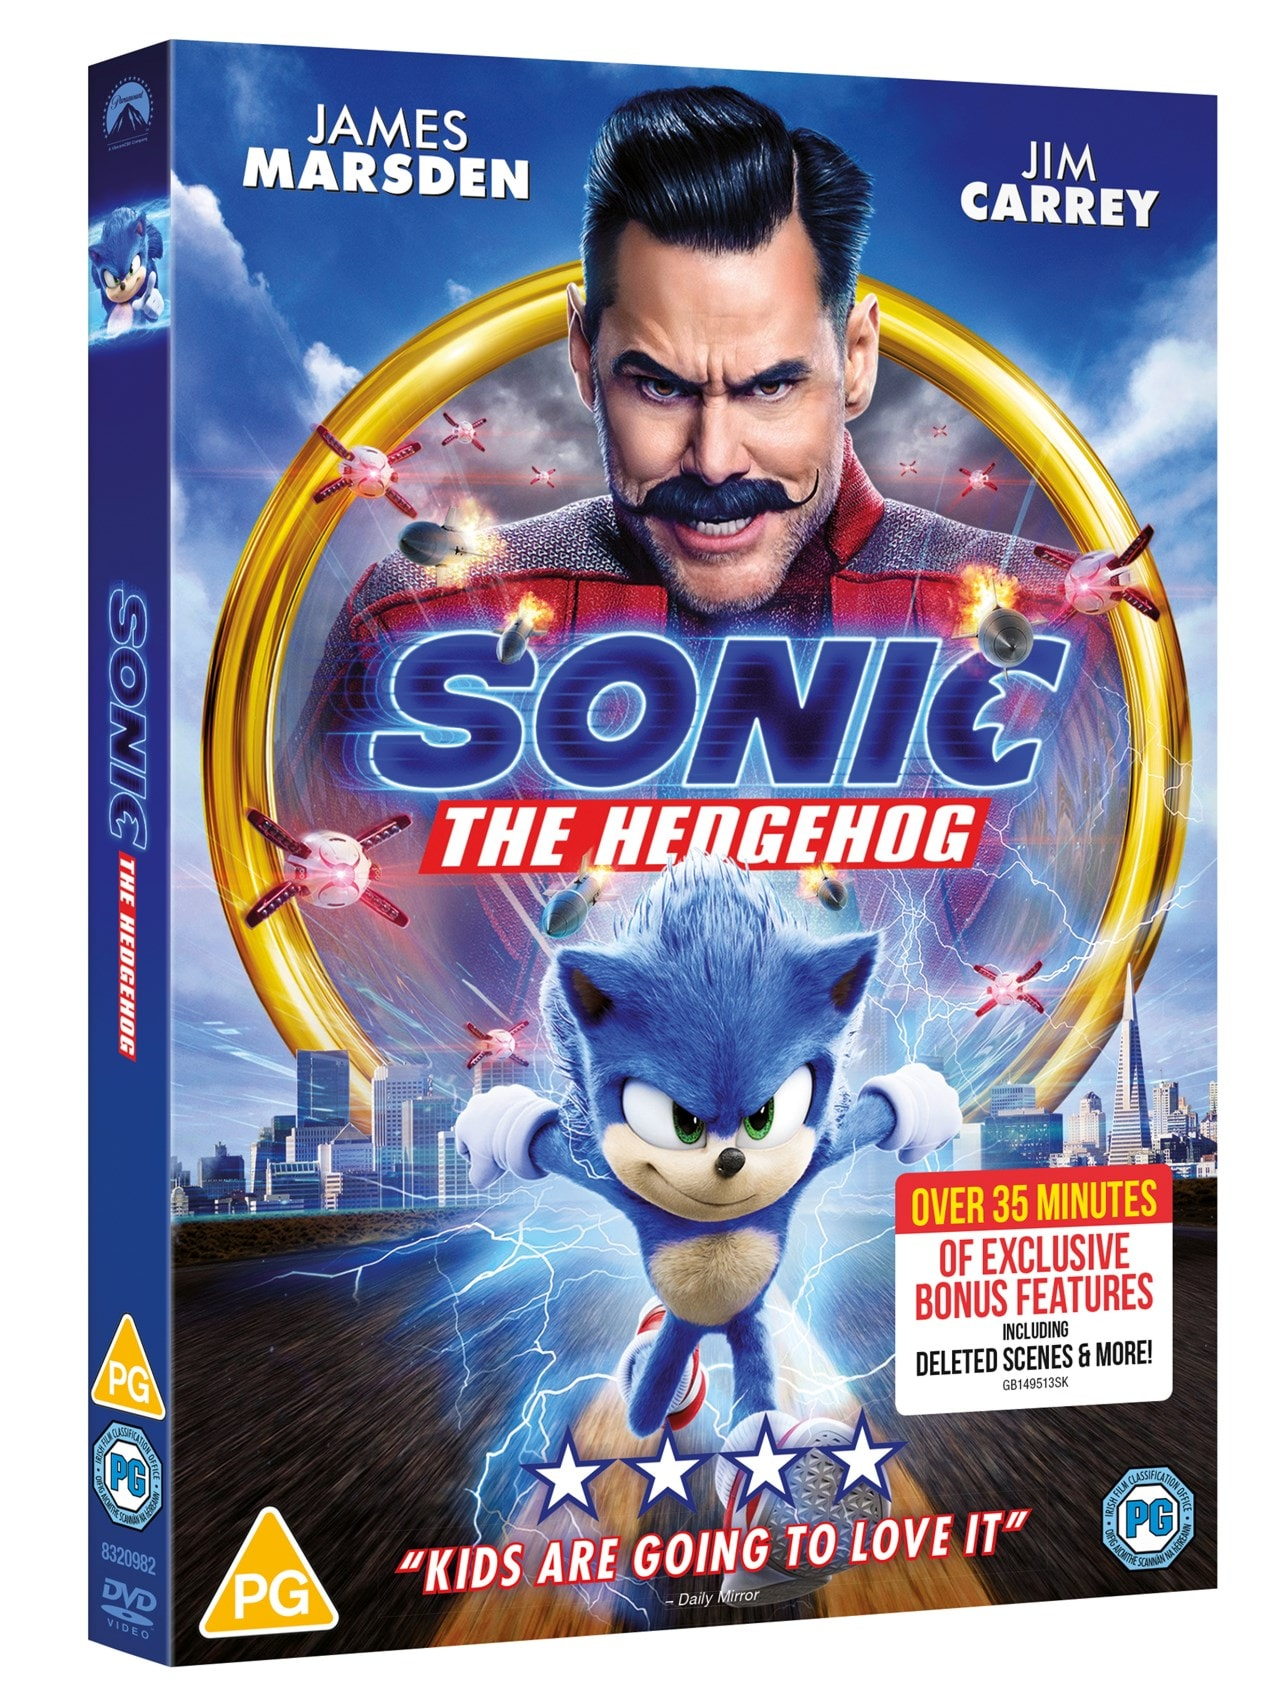 Sonic The Hedgehog Dvd Free Shipping Over 20 Hmv Store